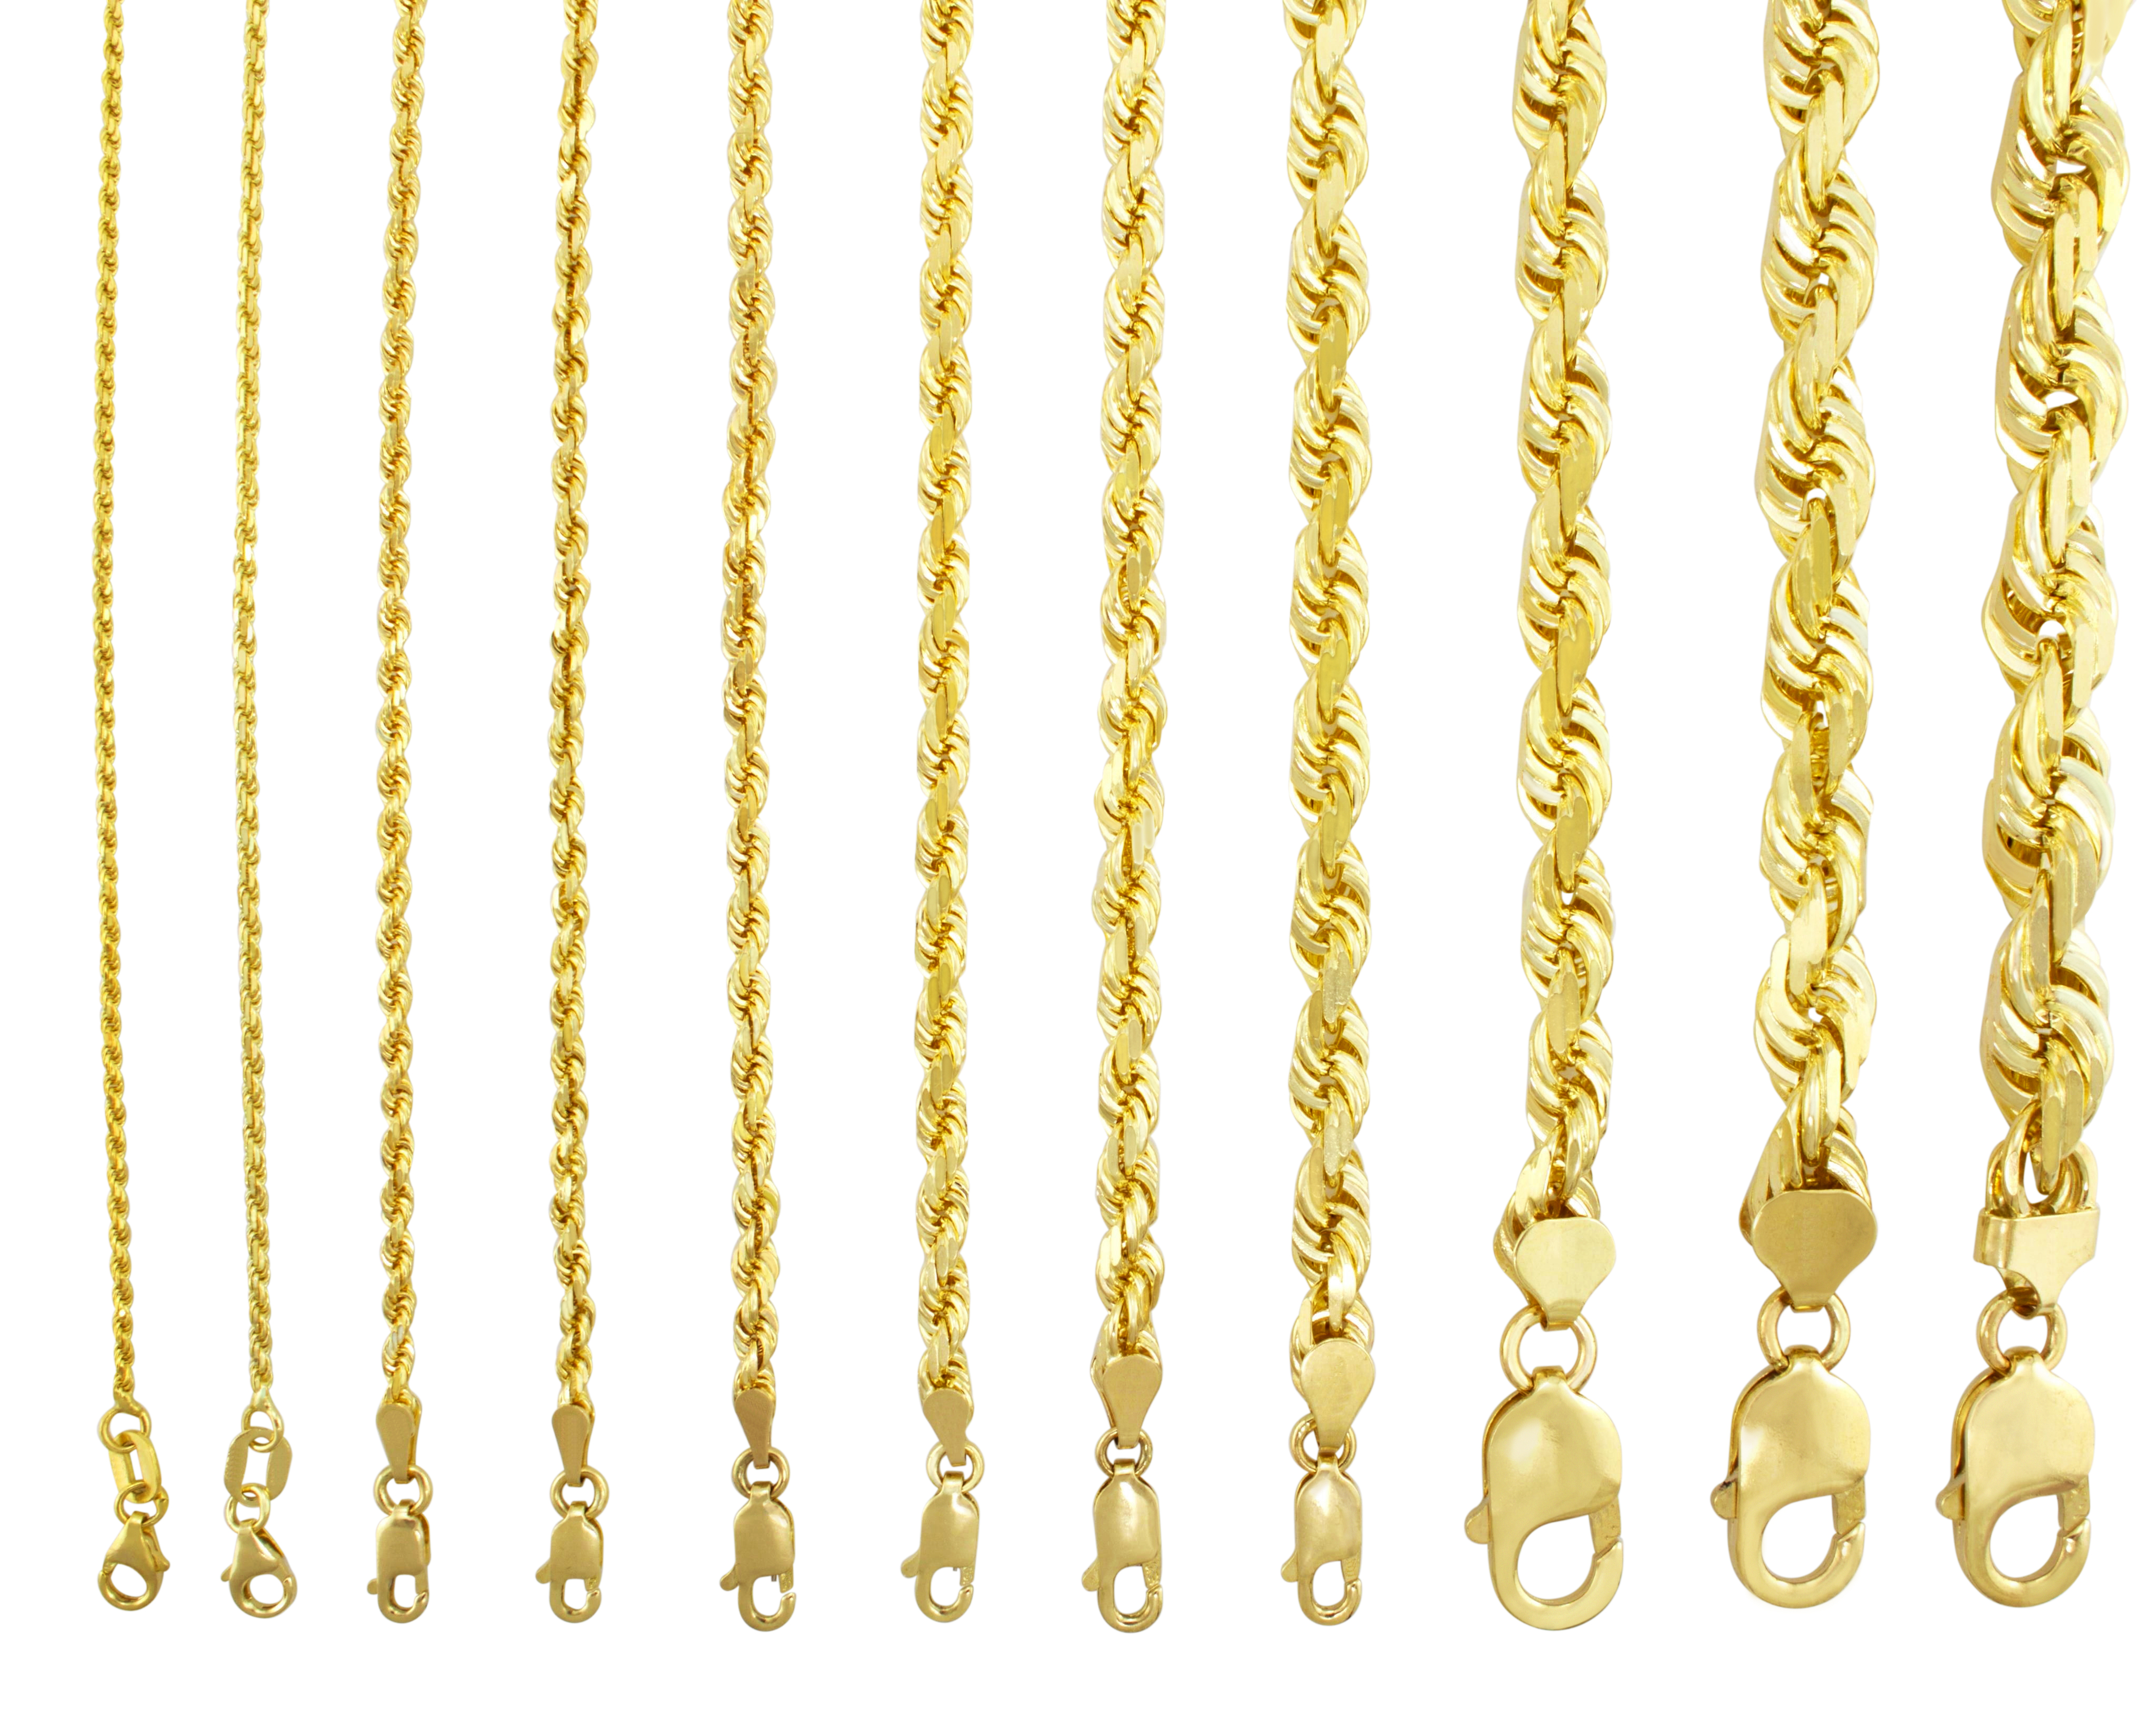 983942e7038d9 Details about 10K Yellow Gold 1mm-10mm Diamond Cut Solid Rope Chain Pendant  Necklace 16